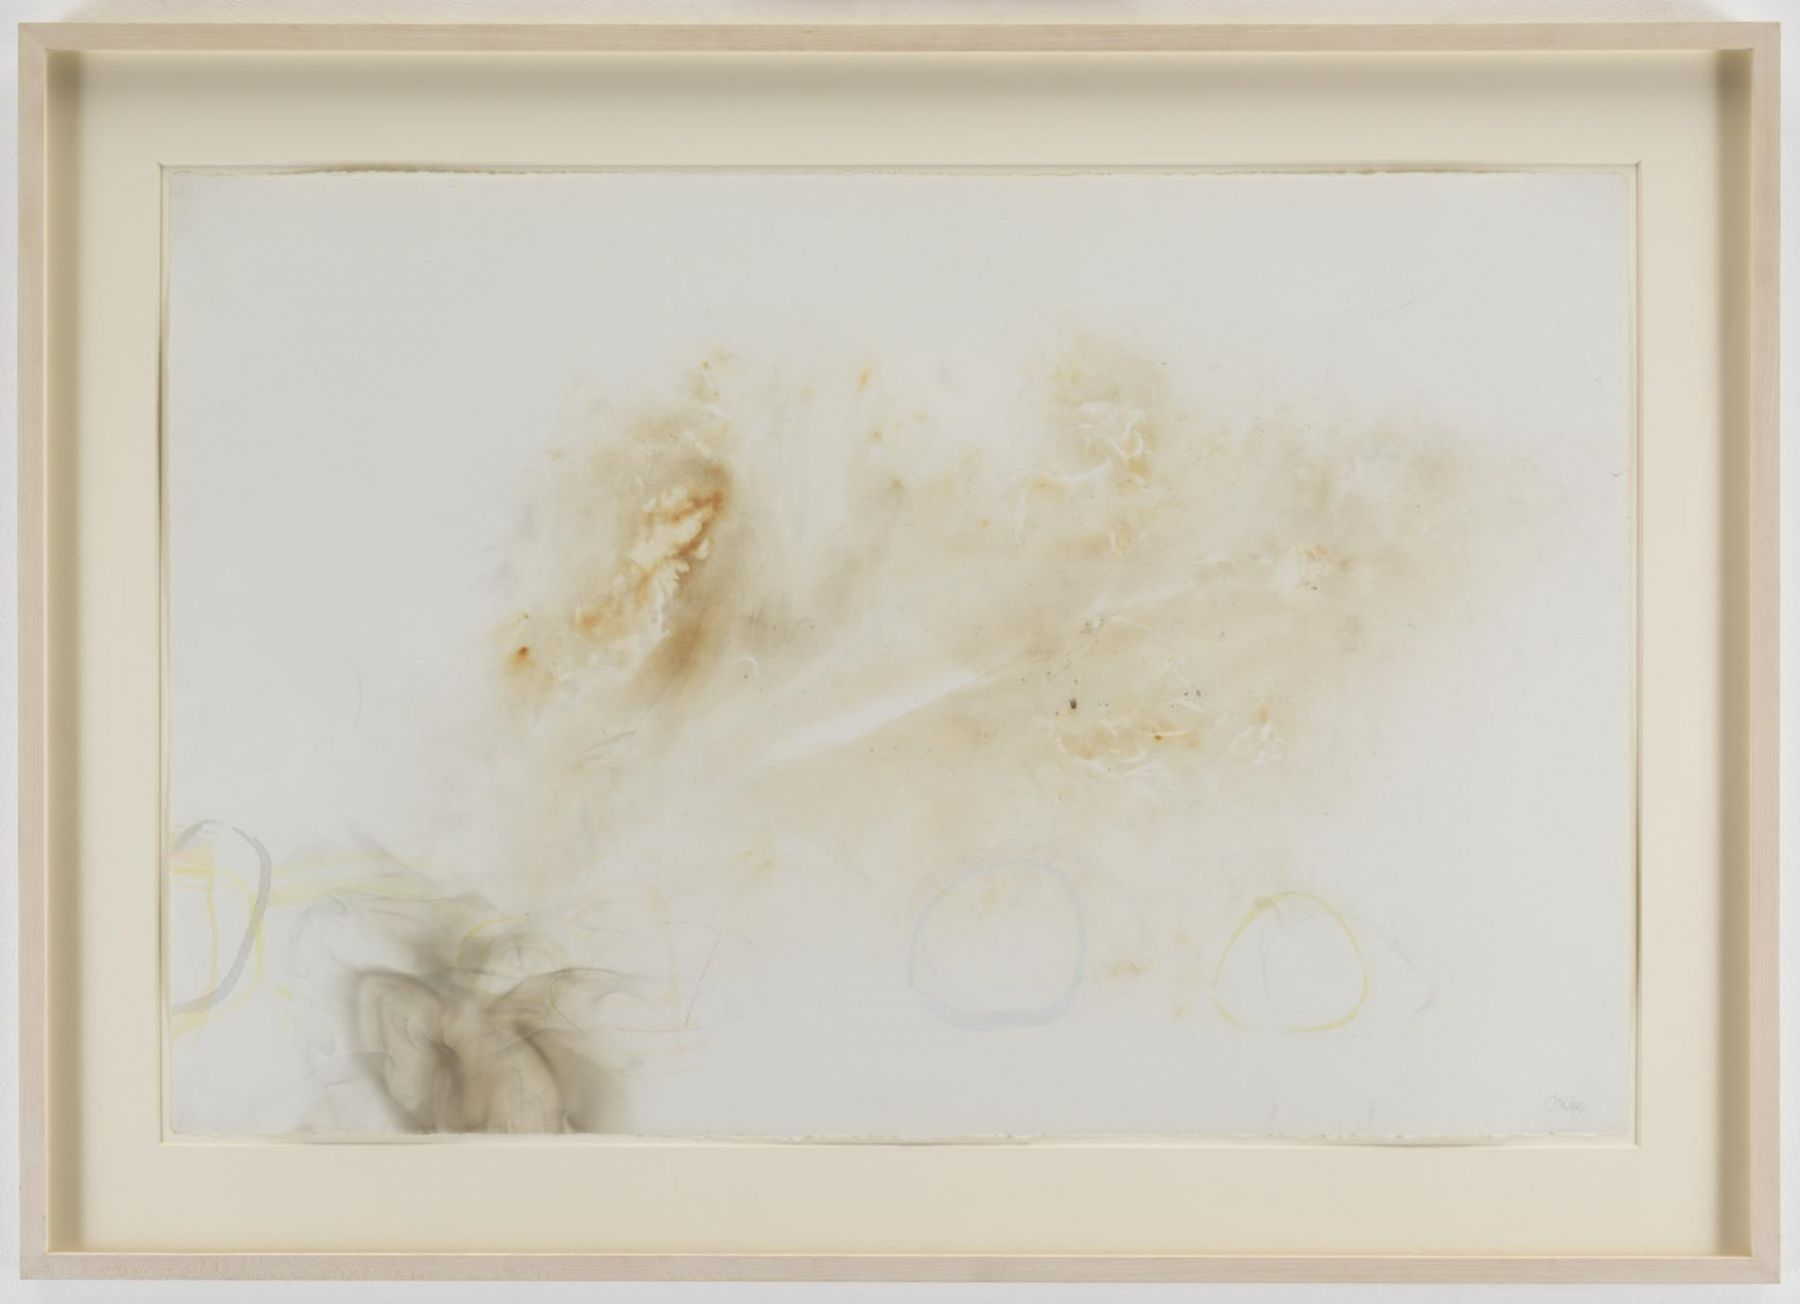 , JOHN CAGE River Rocks and Smoke, 4/12/90, #11, 1990 Watercolor on Waterford cold press 260 lb. paper prepared with fire and smoke 26.5 x 39.5 inches (67.3 x 100.3 cm) Courtesy of Margarete Roeder Gallery and the John Cage Trust